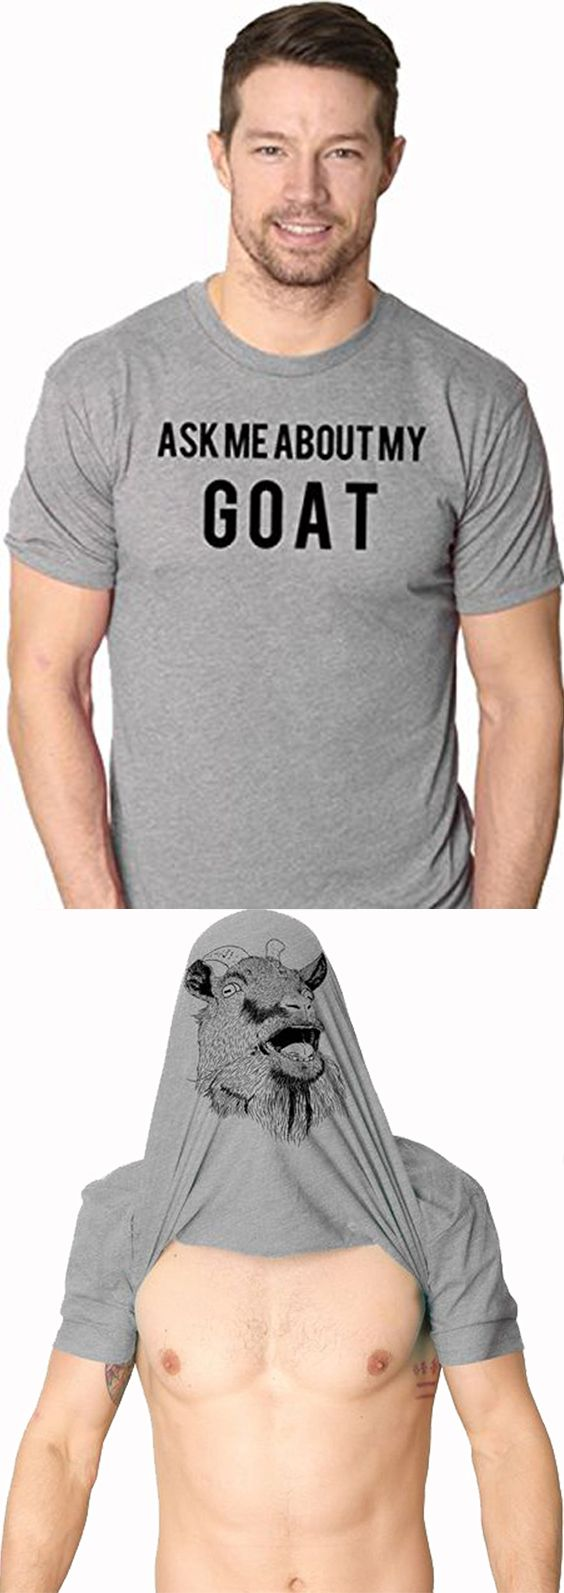 Youth Ask Me About My Goat Funny Animal Flip Shirt Costume Cool Tee for Kids